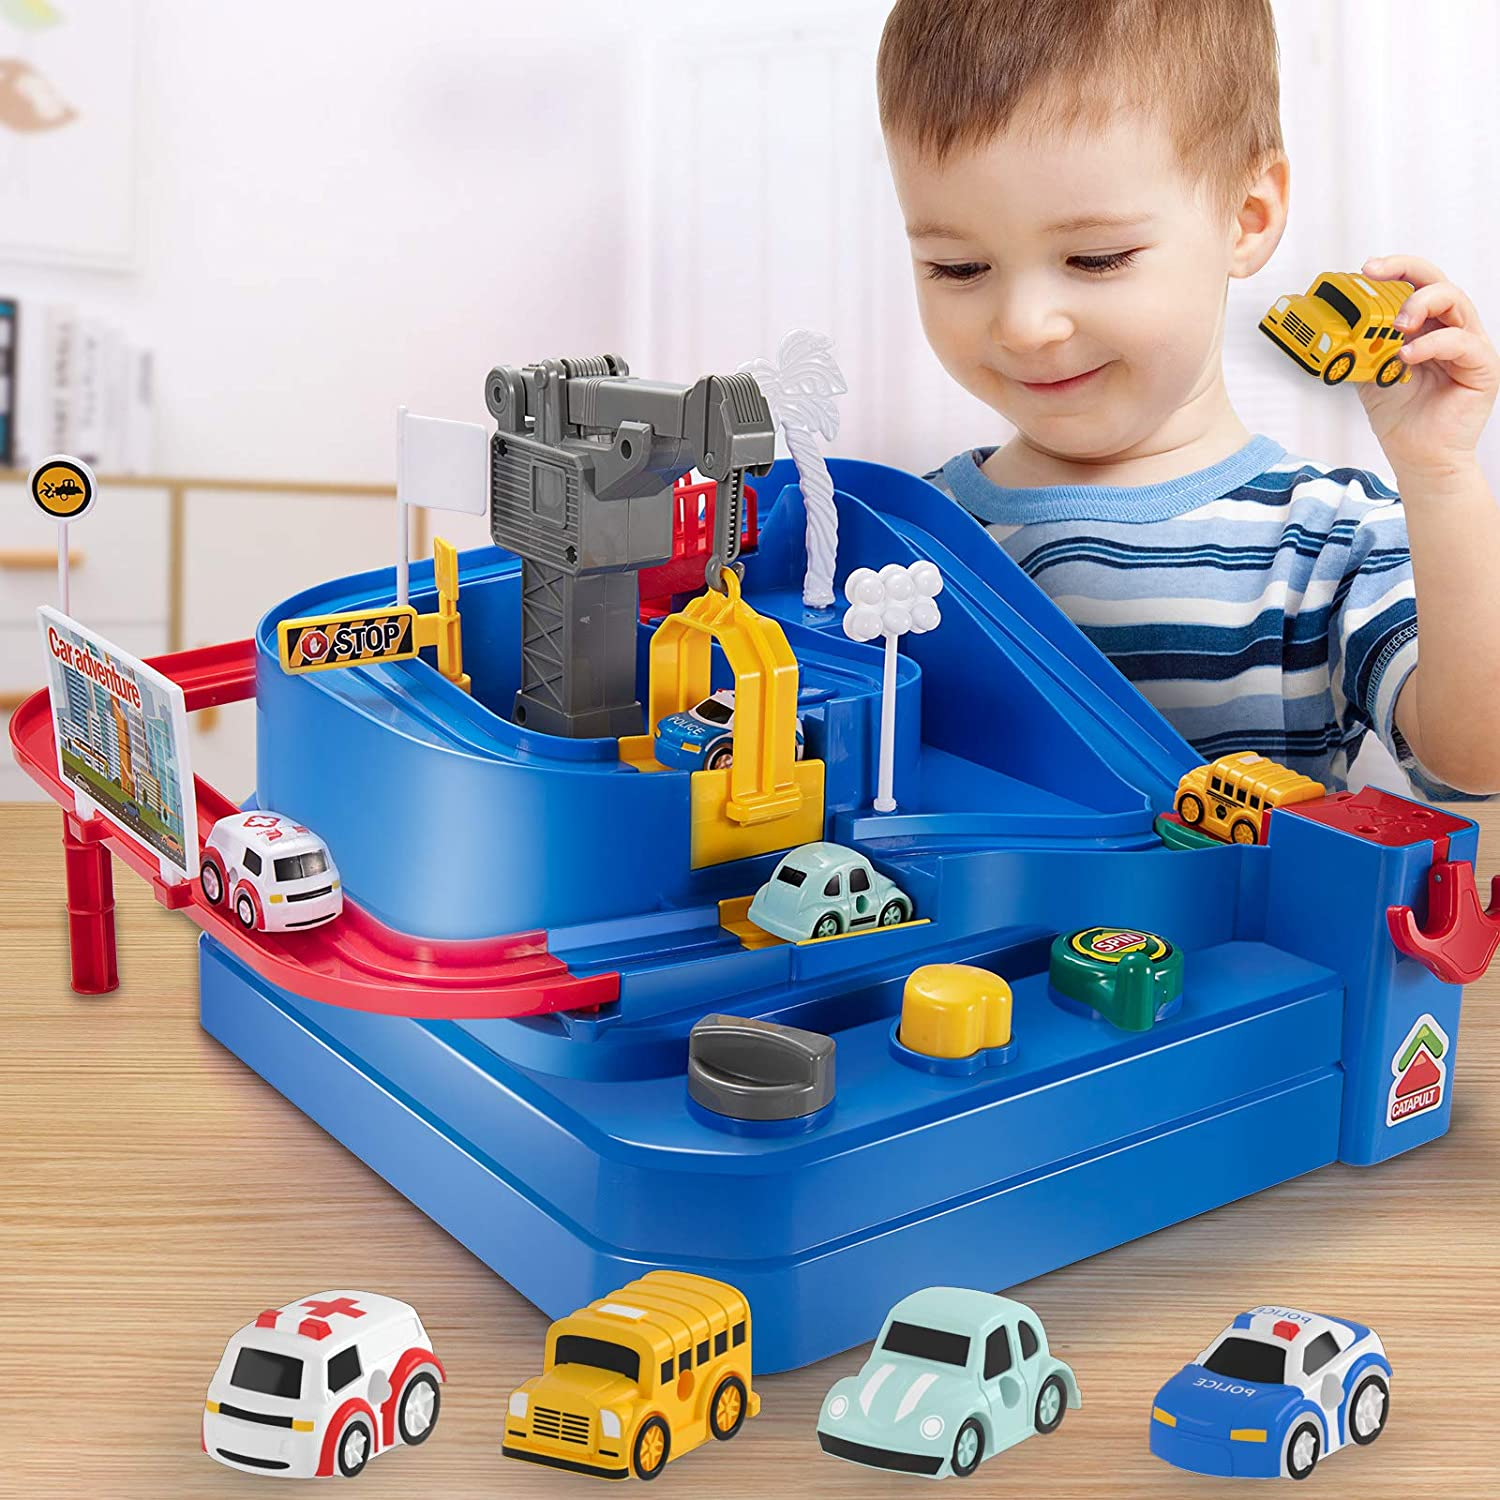 Race Car Track Toy - Baby Home Educational Toddler Race Tracks Car Adventure Puzzle Playsets Toys for Boys Girl Gift with 4 Mini Cars for Kids Toys Age 3+